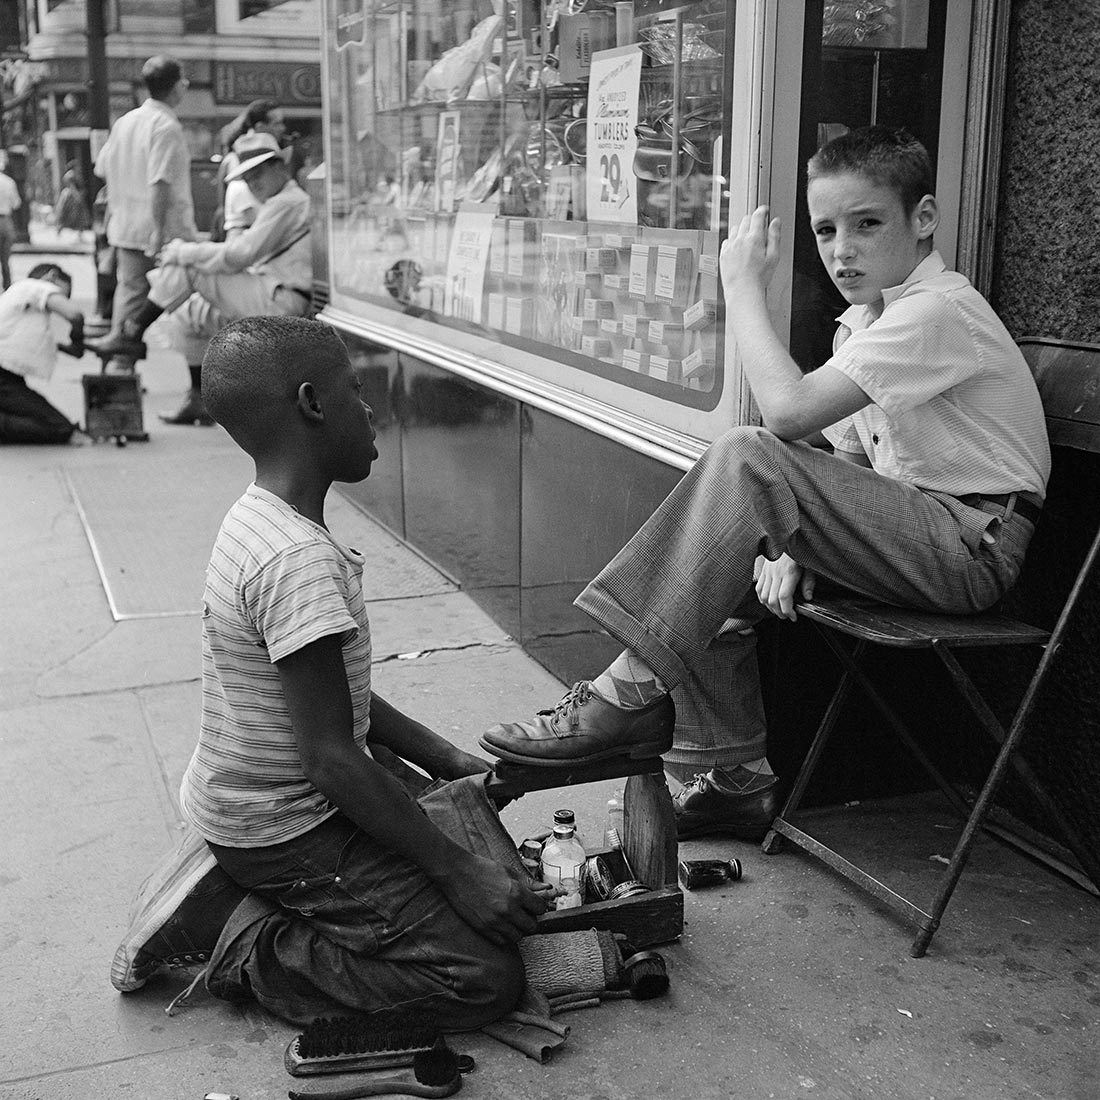 masters of street photography vivian dorothea maier street photography in the world. Black Bedroom Furniture Sets. Home Design Ideas